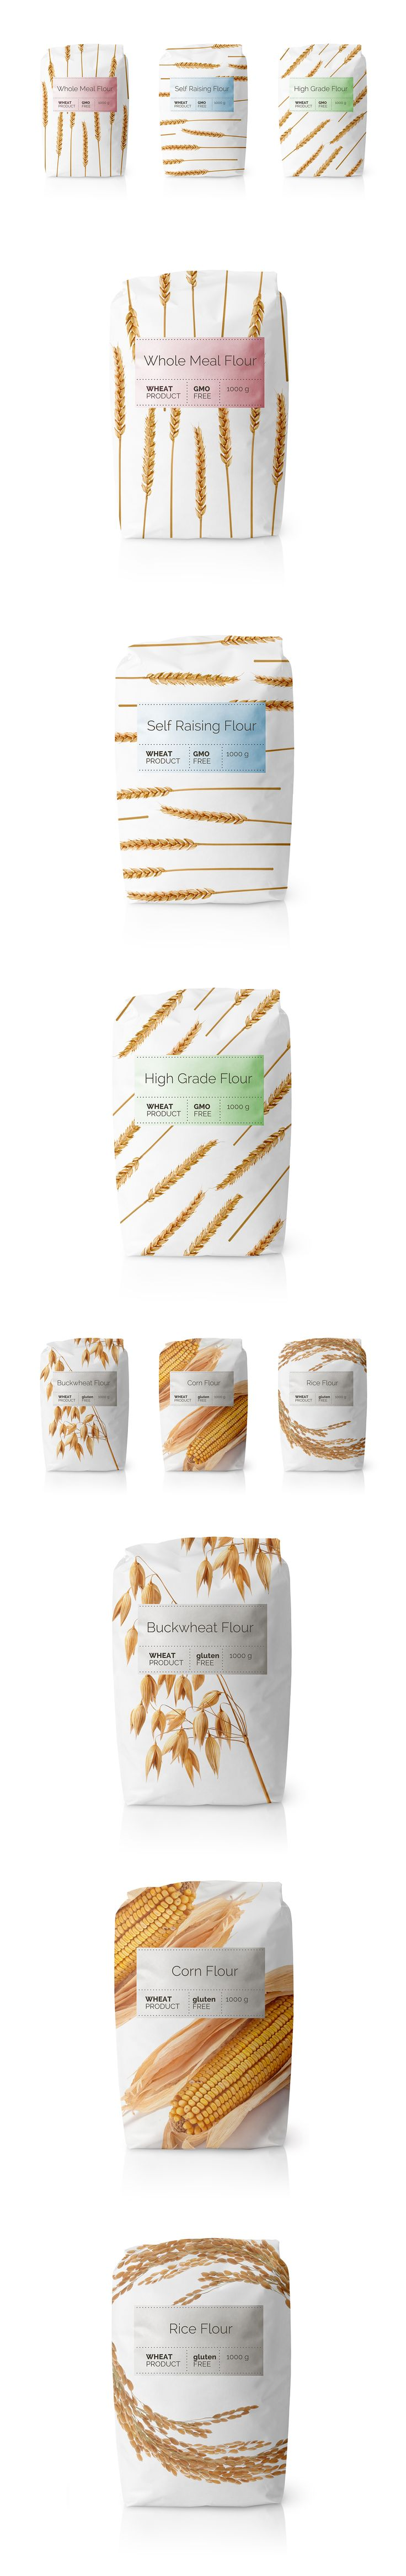 Flour GMO Free Whole Whet Products. Minimalistic graphics with simple label easing the variations of packaging.